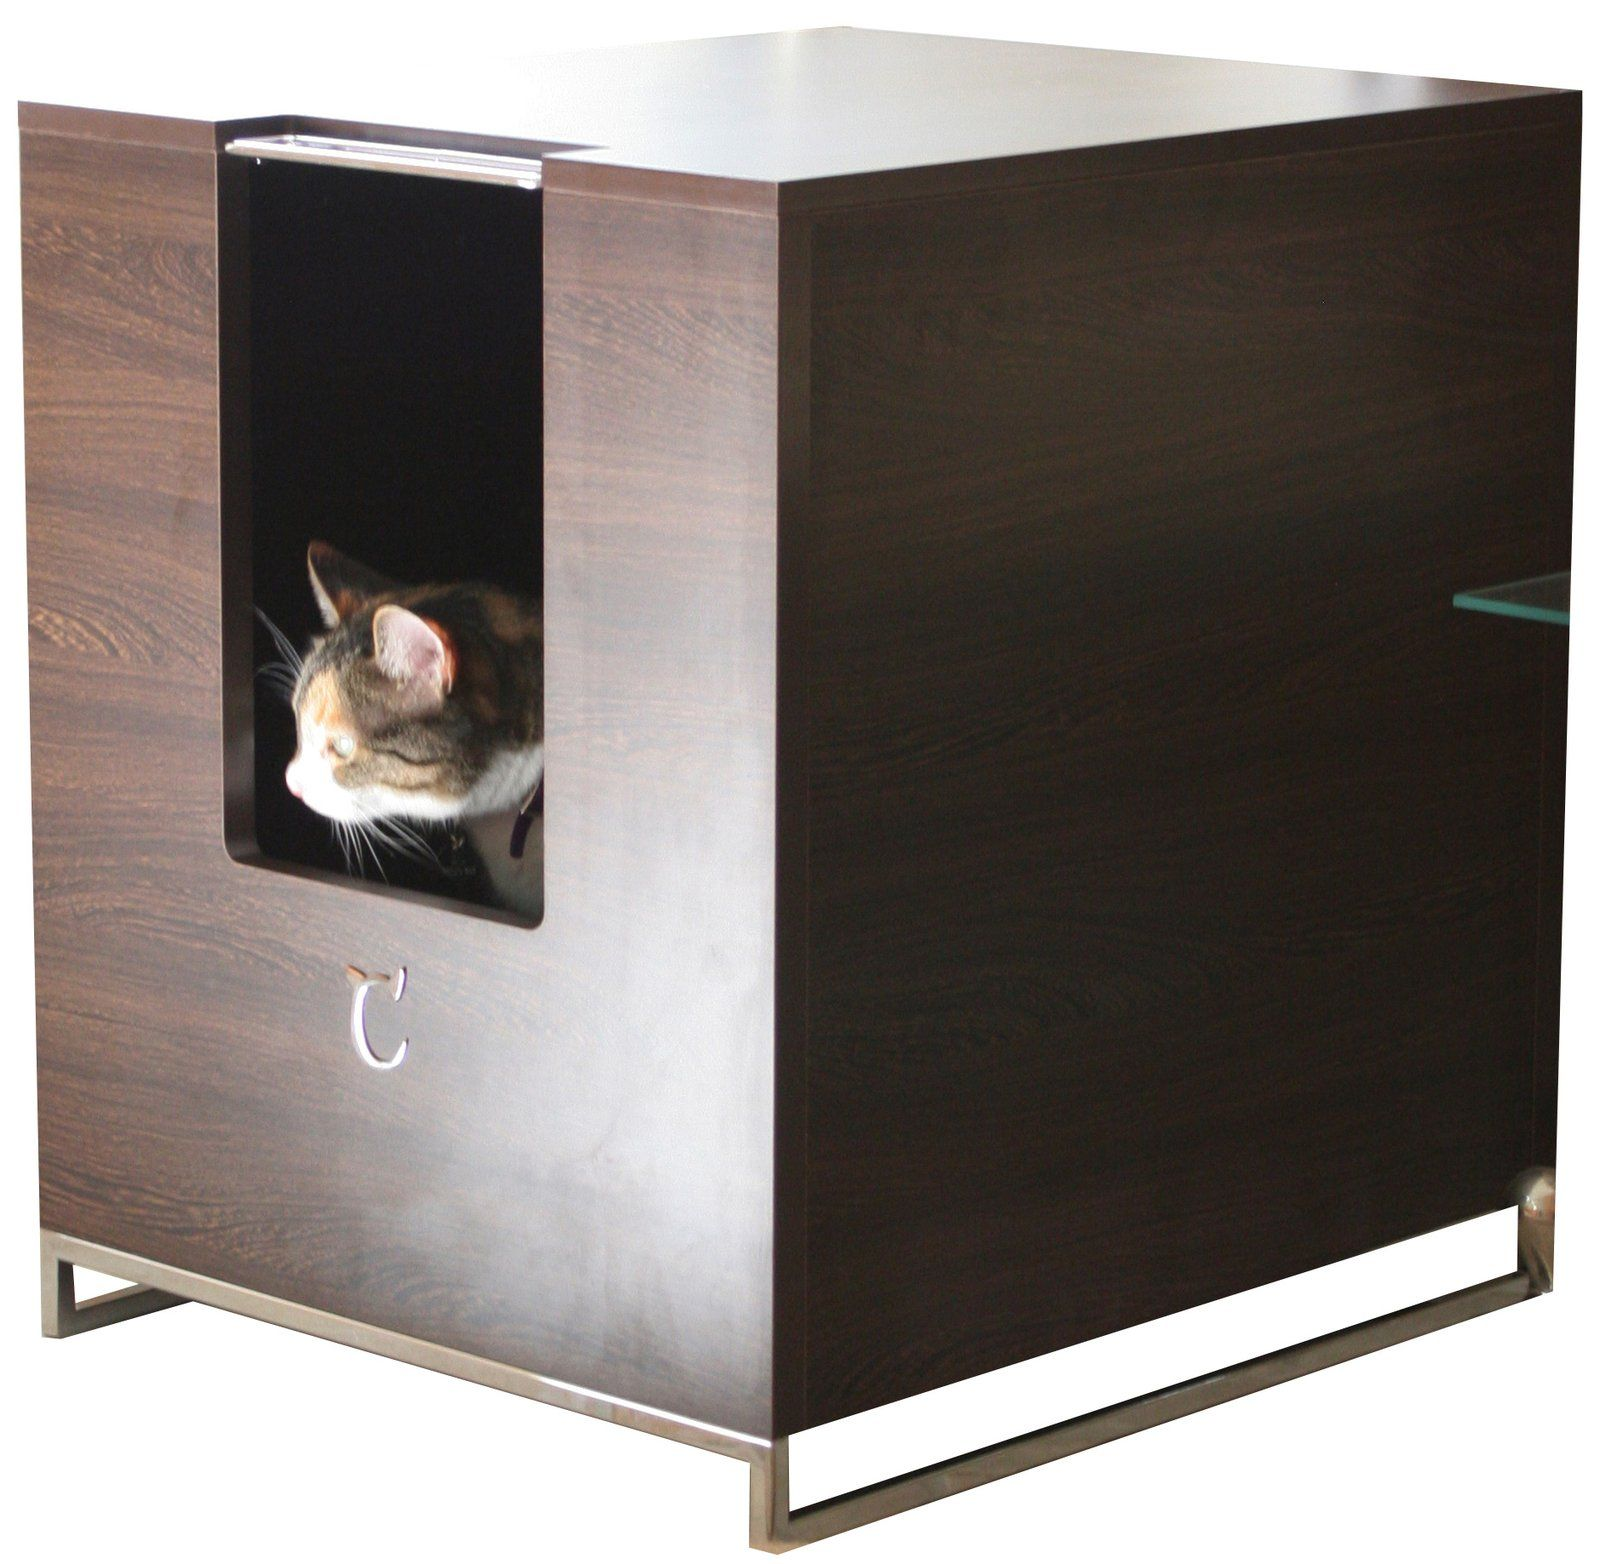 Modern Cat Designs Litter Box Hider. I Think I Need This For The New House